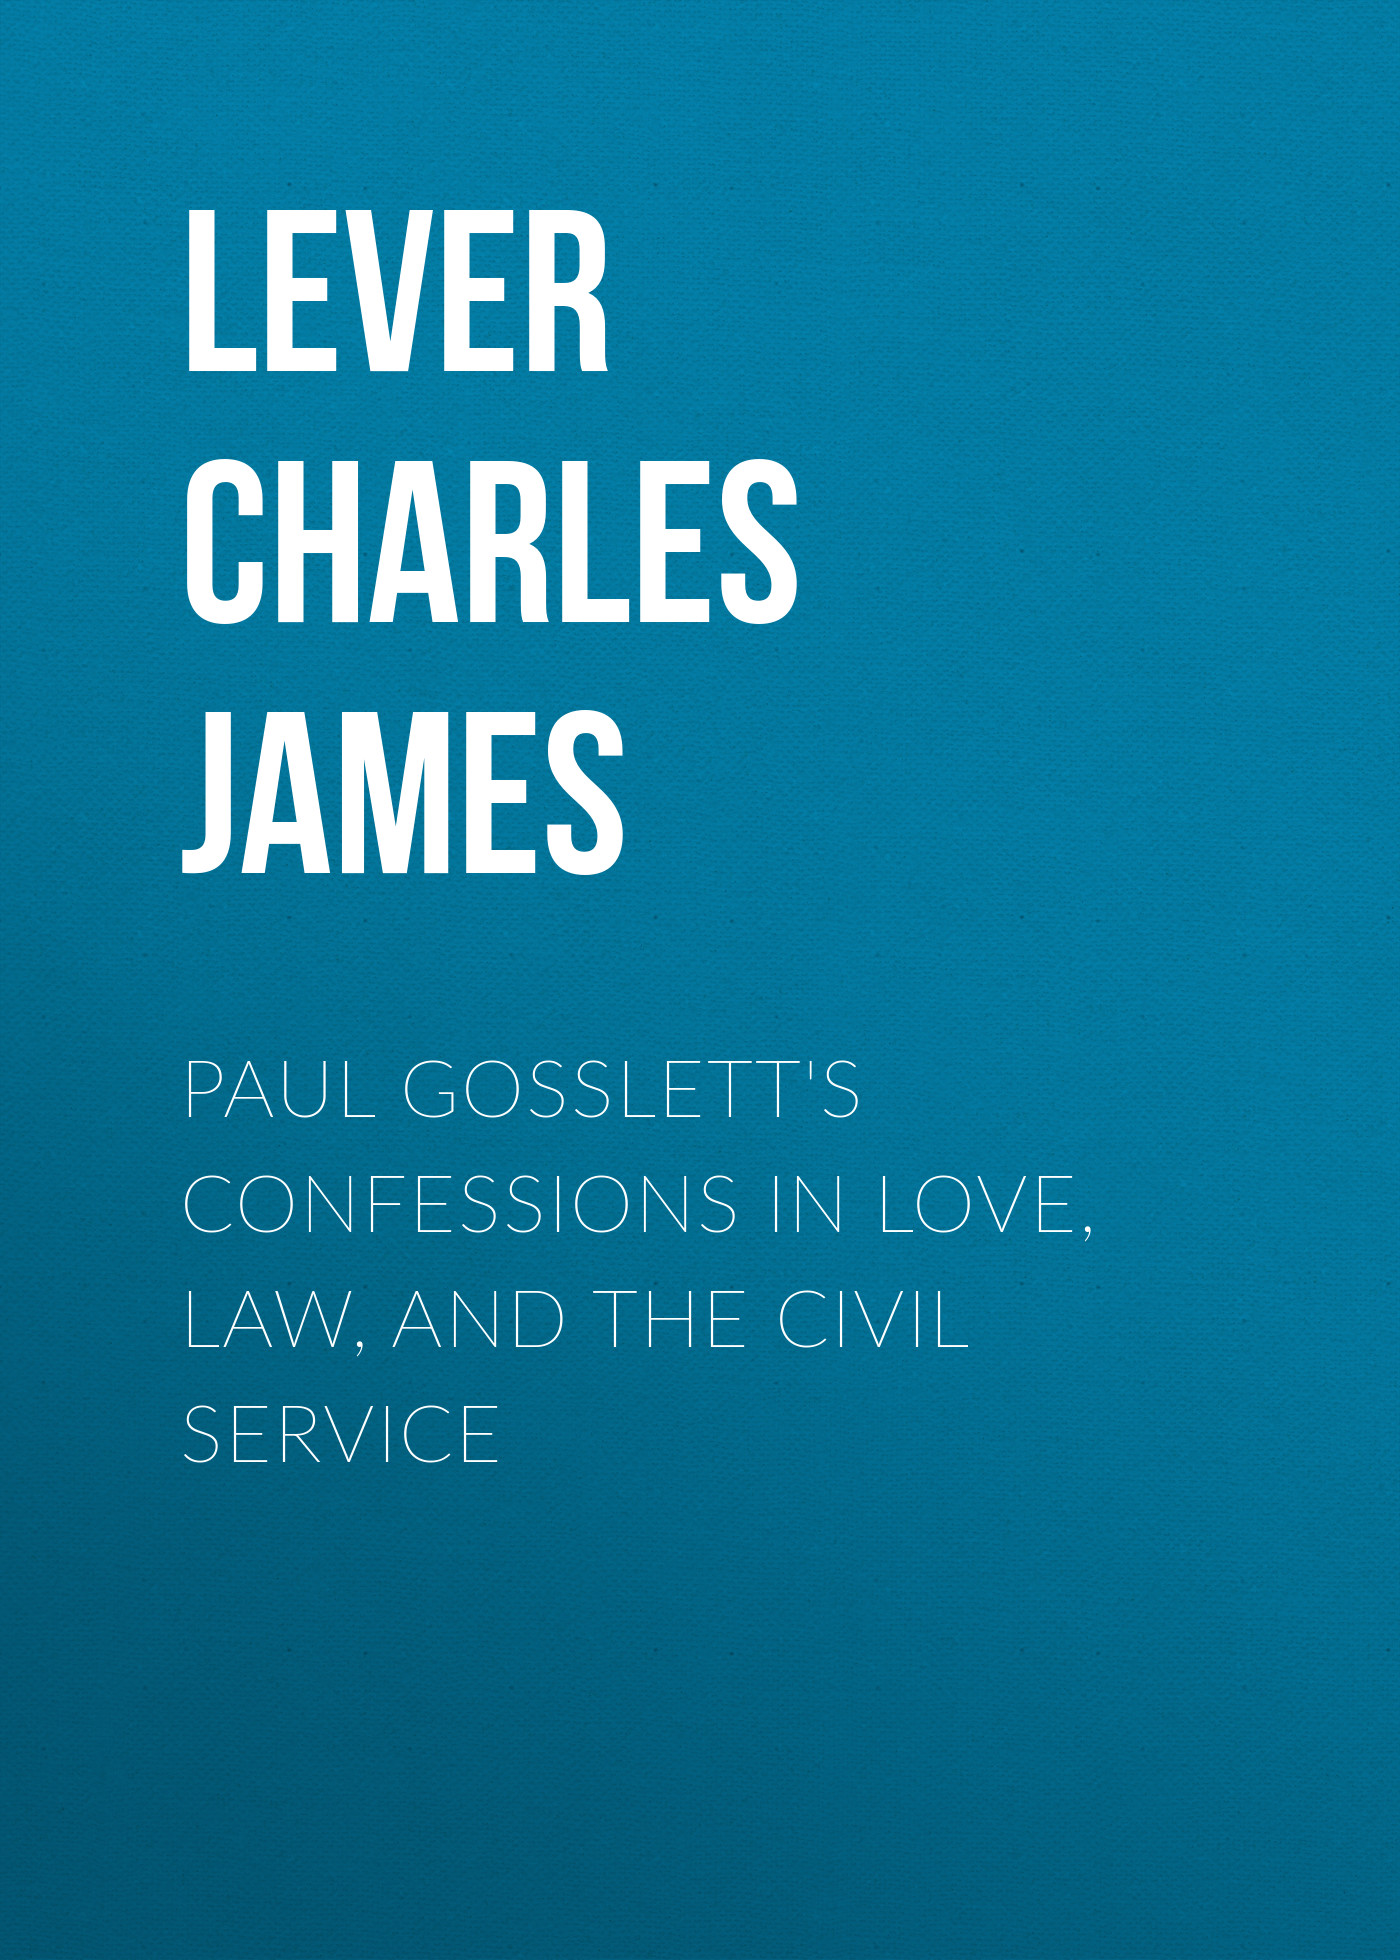 Lever Charles James Paul Gosslett's Confessions in Love, Law, and The Civil Service